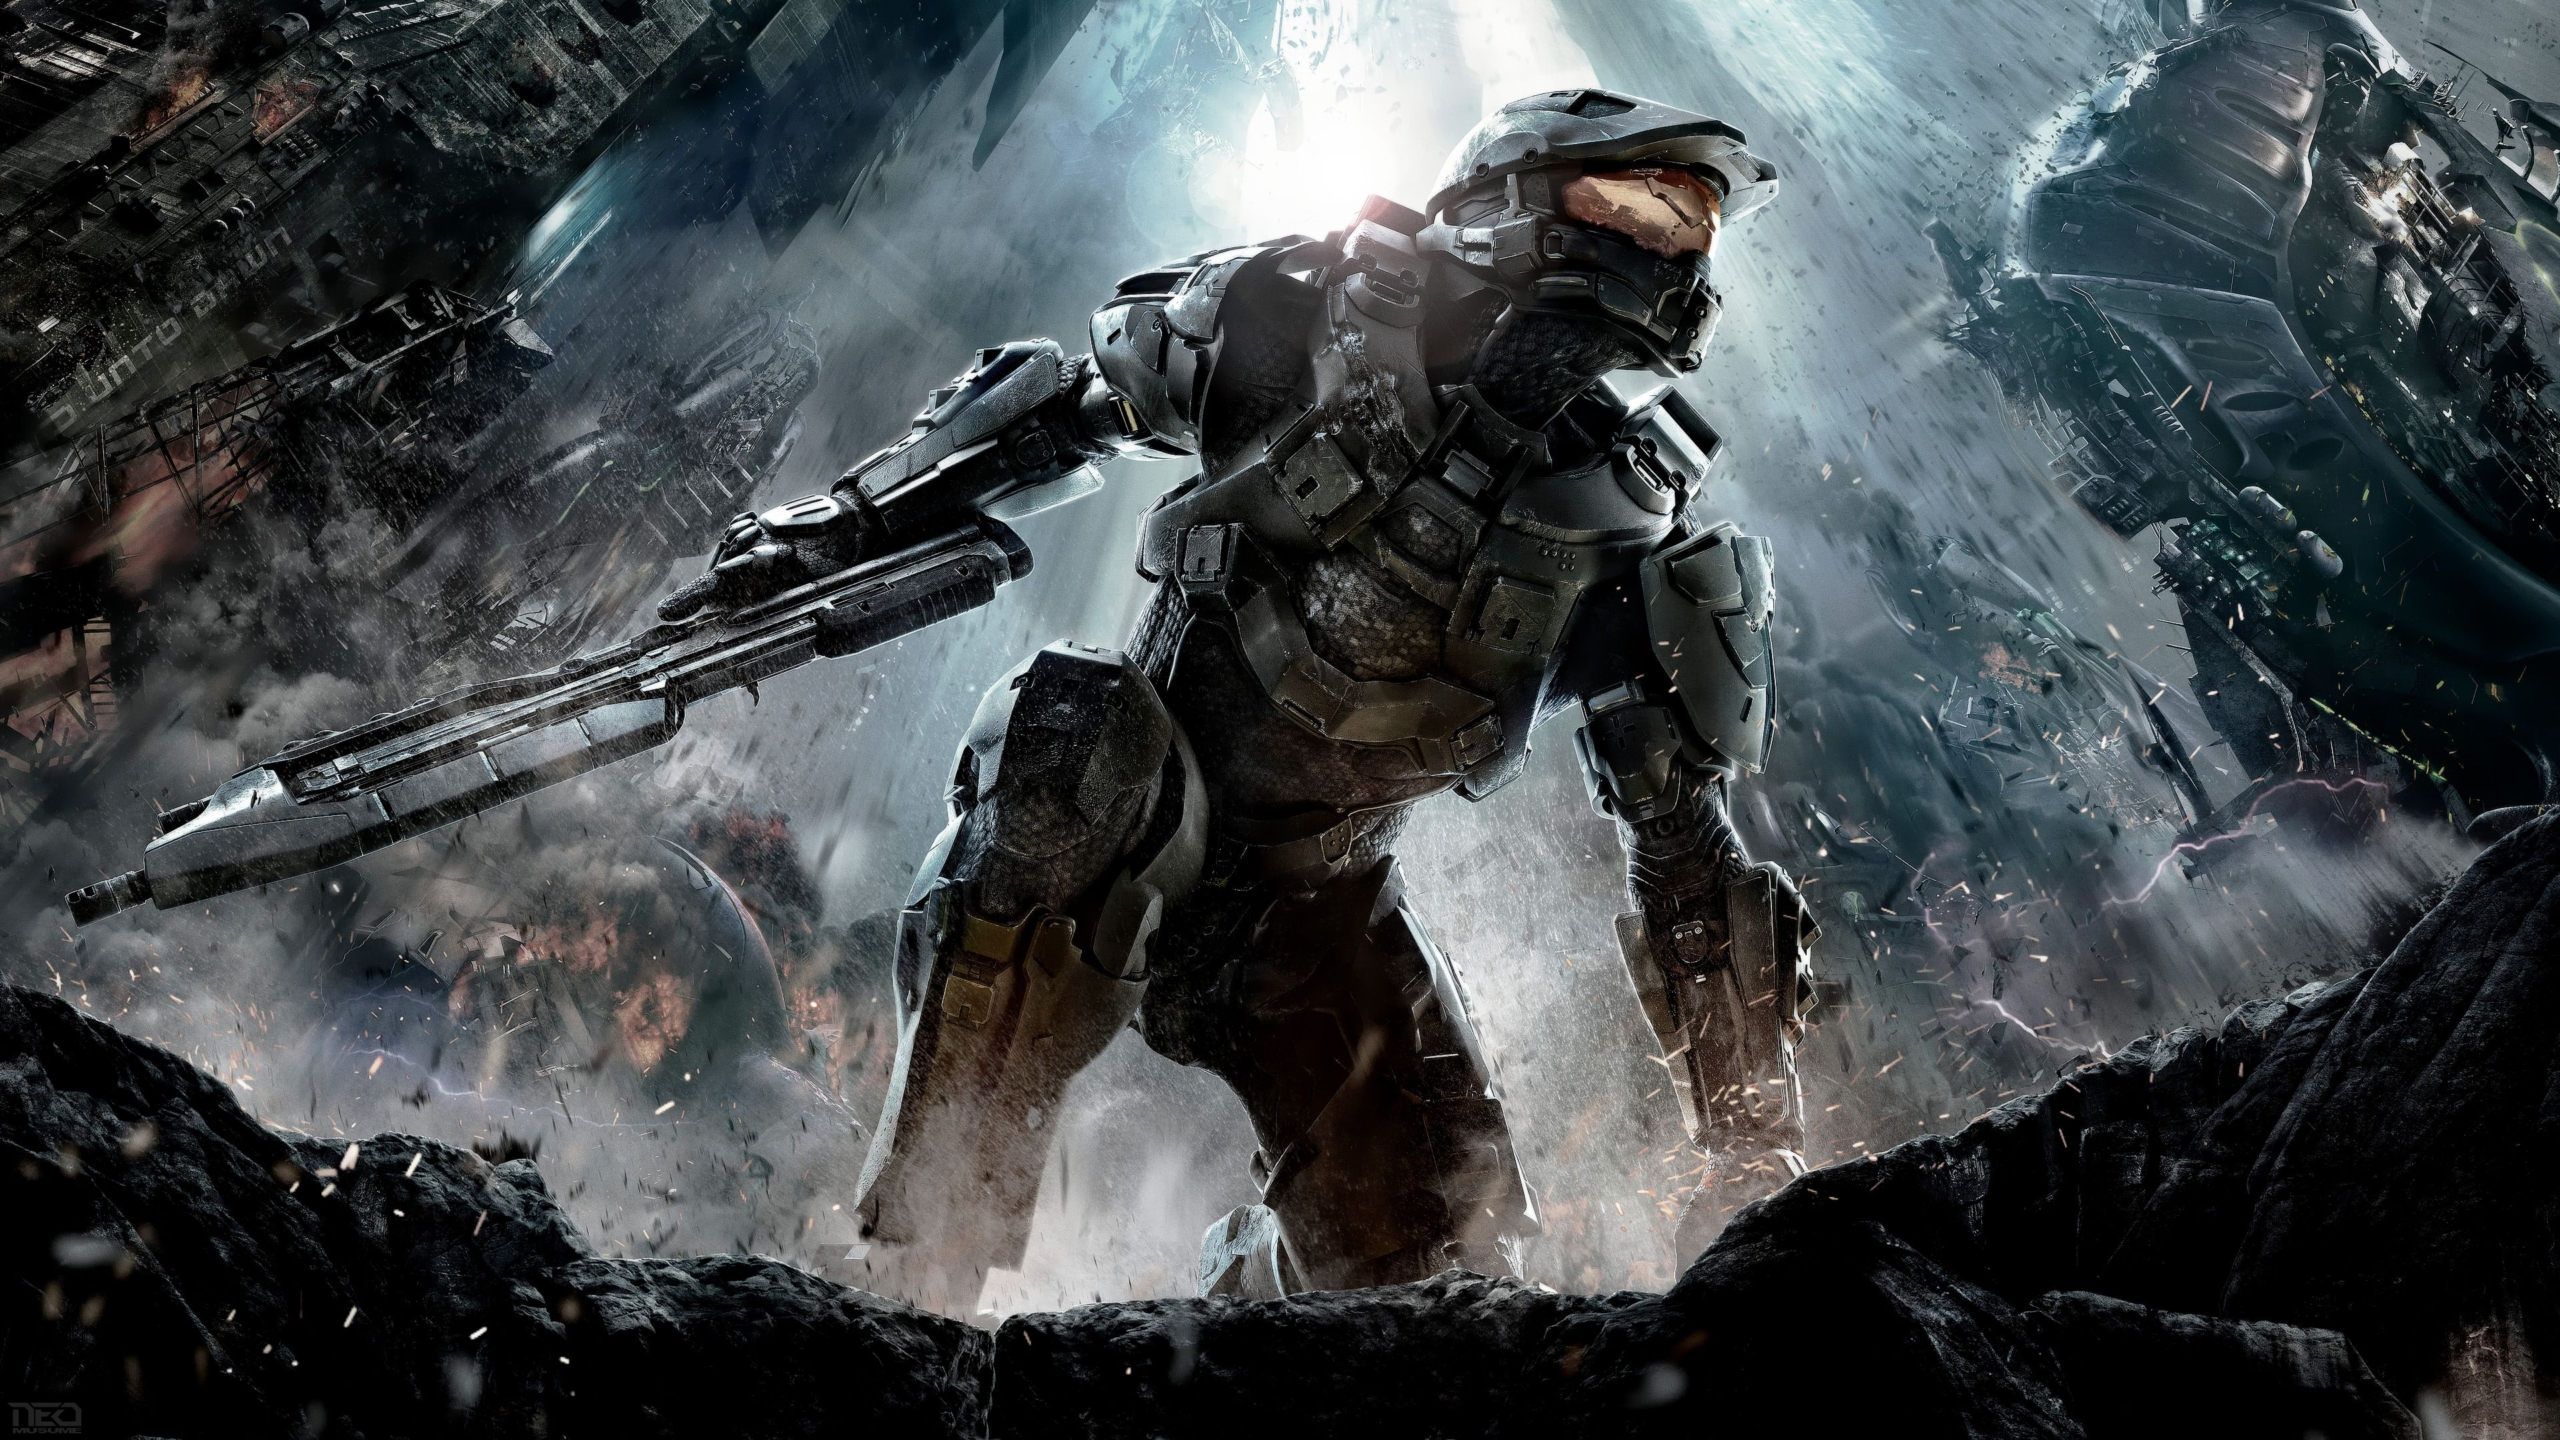 Master Chief Wallpaper design ideas for your computer